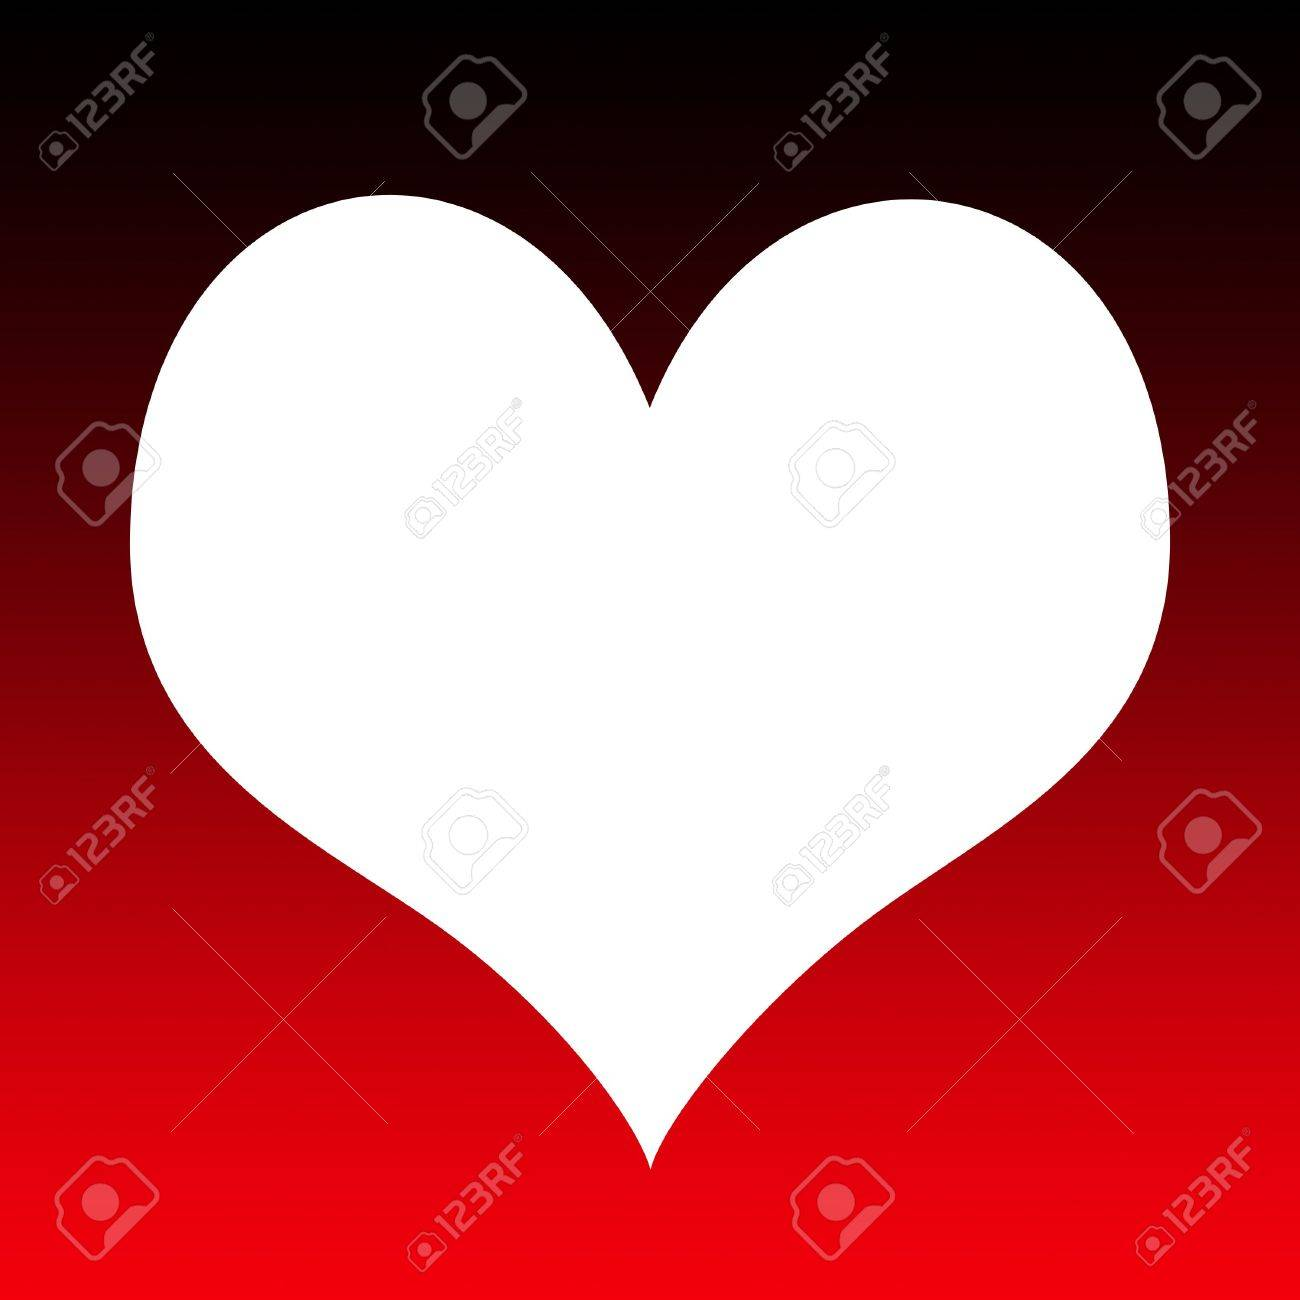 valentine heart outline with copy space stock photo picture and